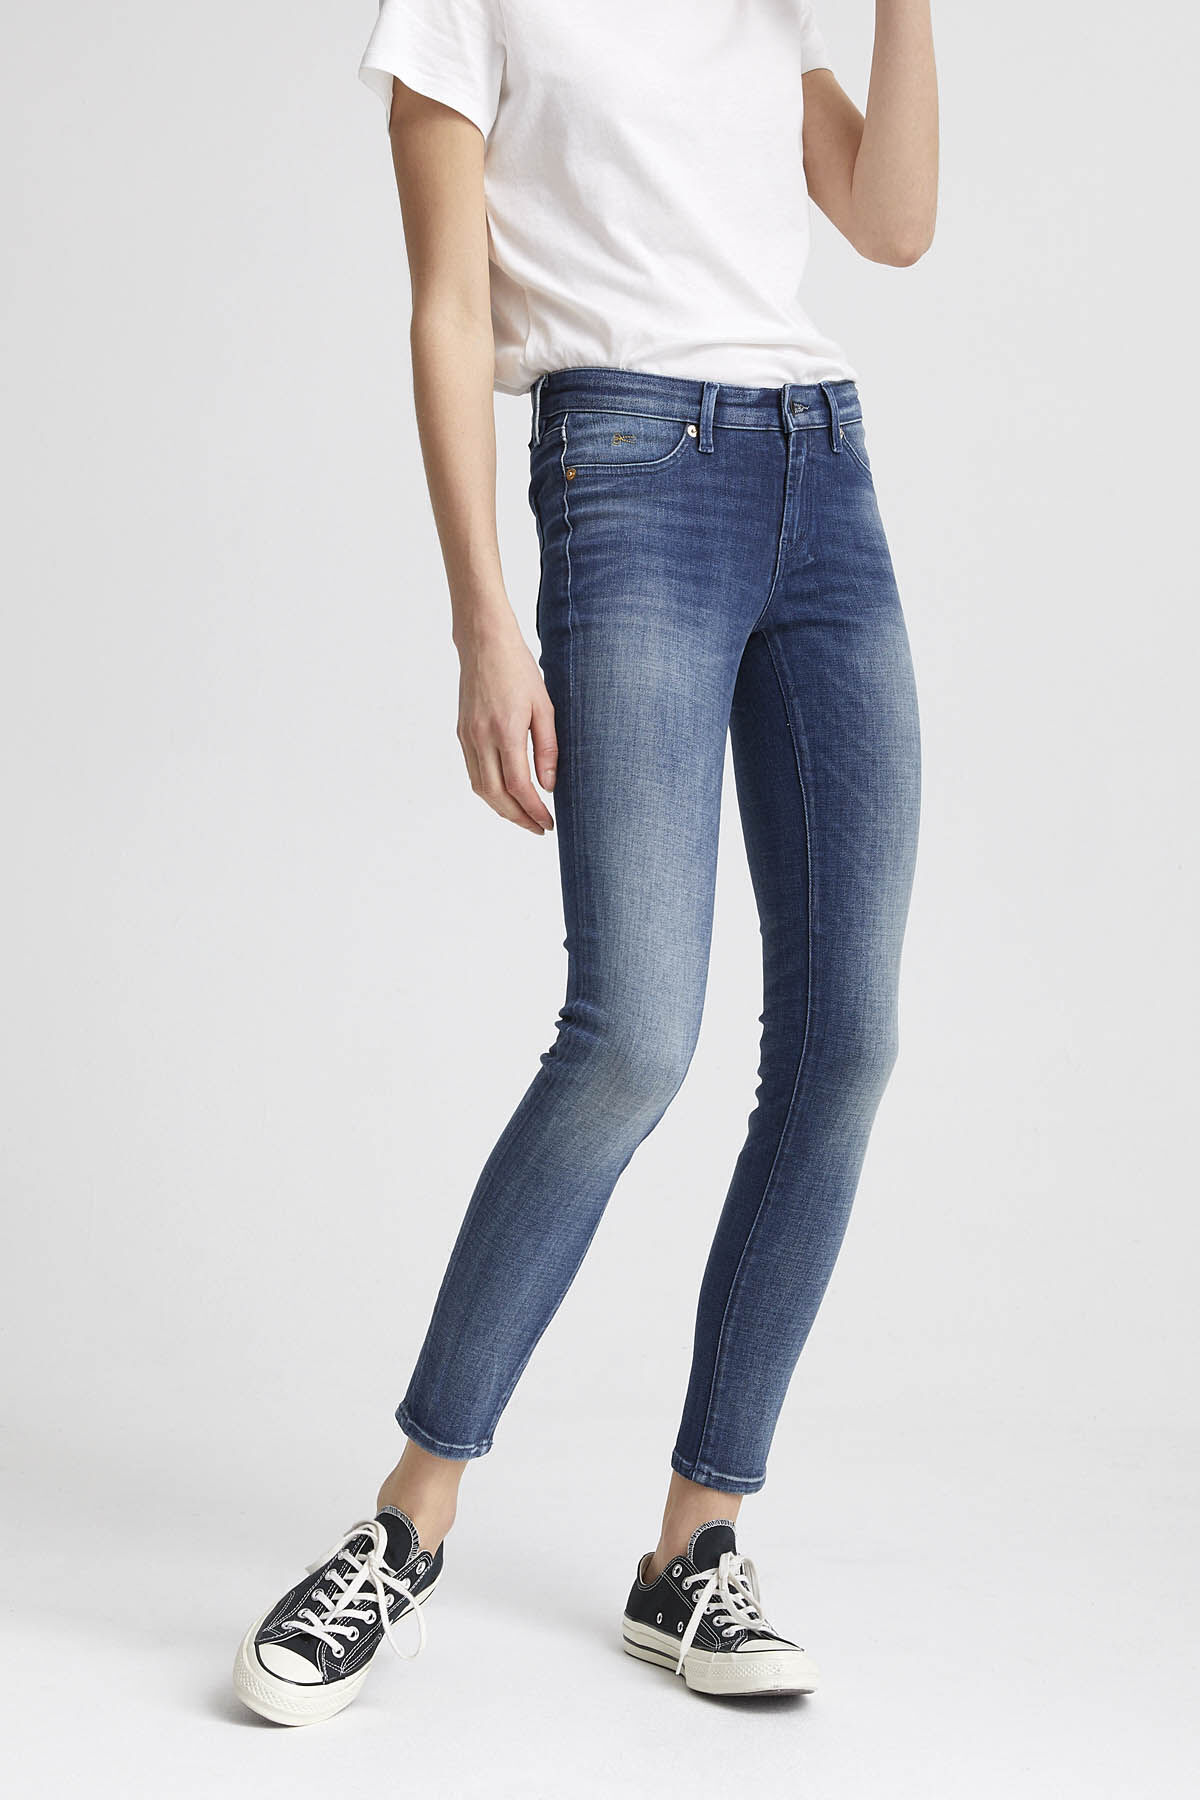 SPRAY Heavy Fade, Indigo Denim - Mid-rise, Tight Fit